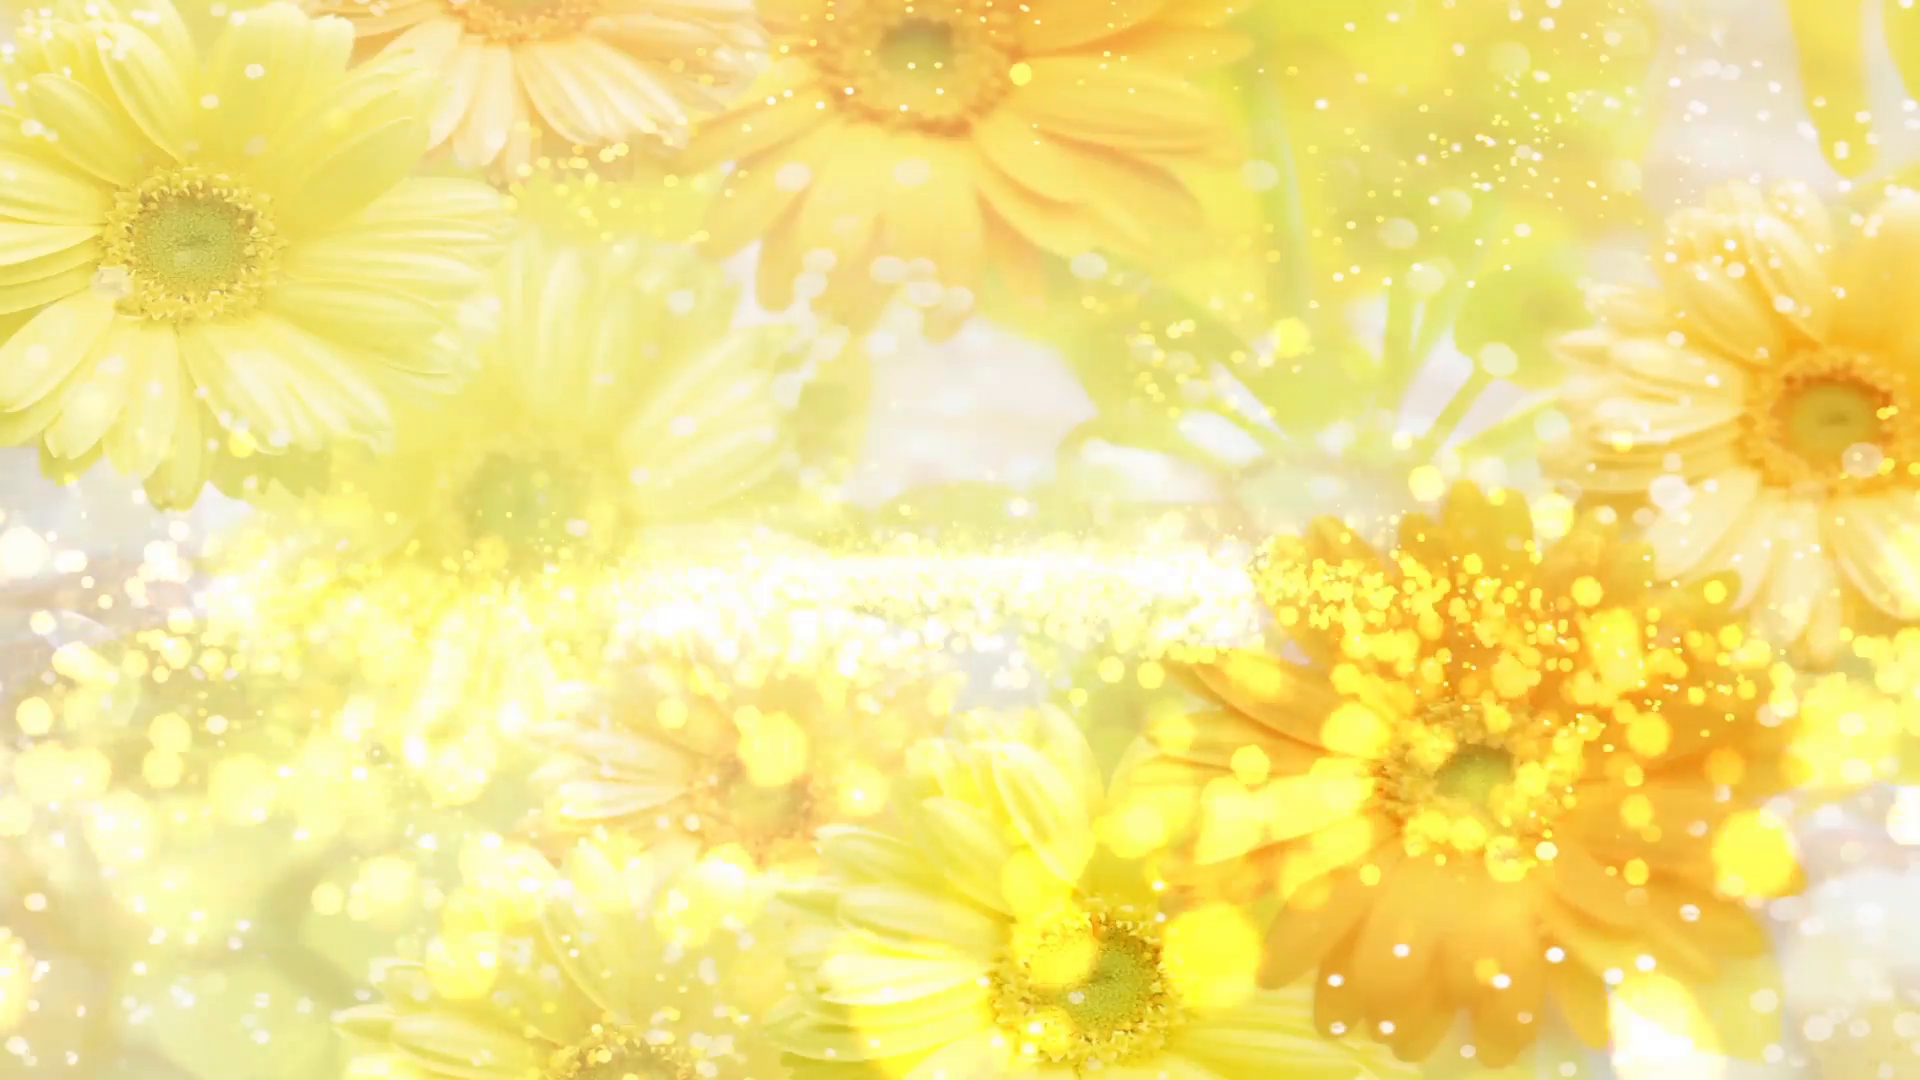 free photo yellow floral background page ornate